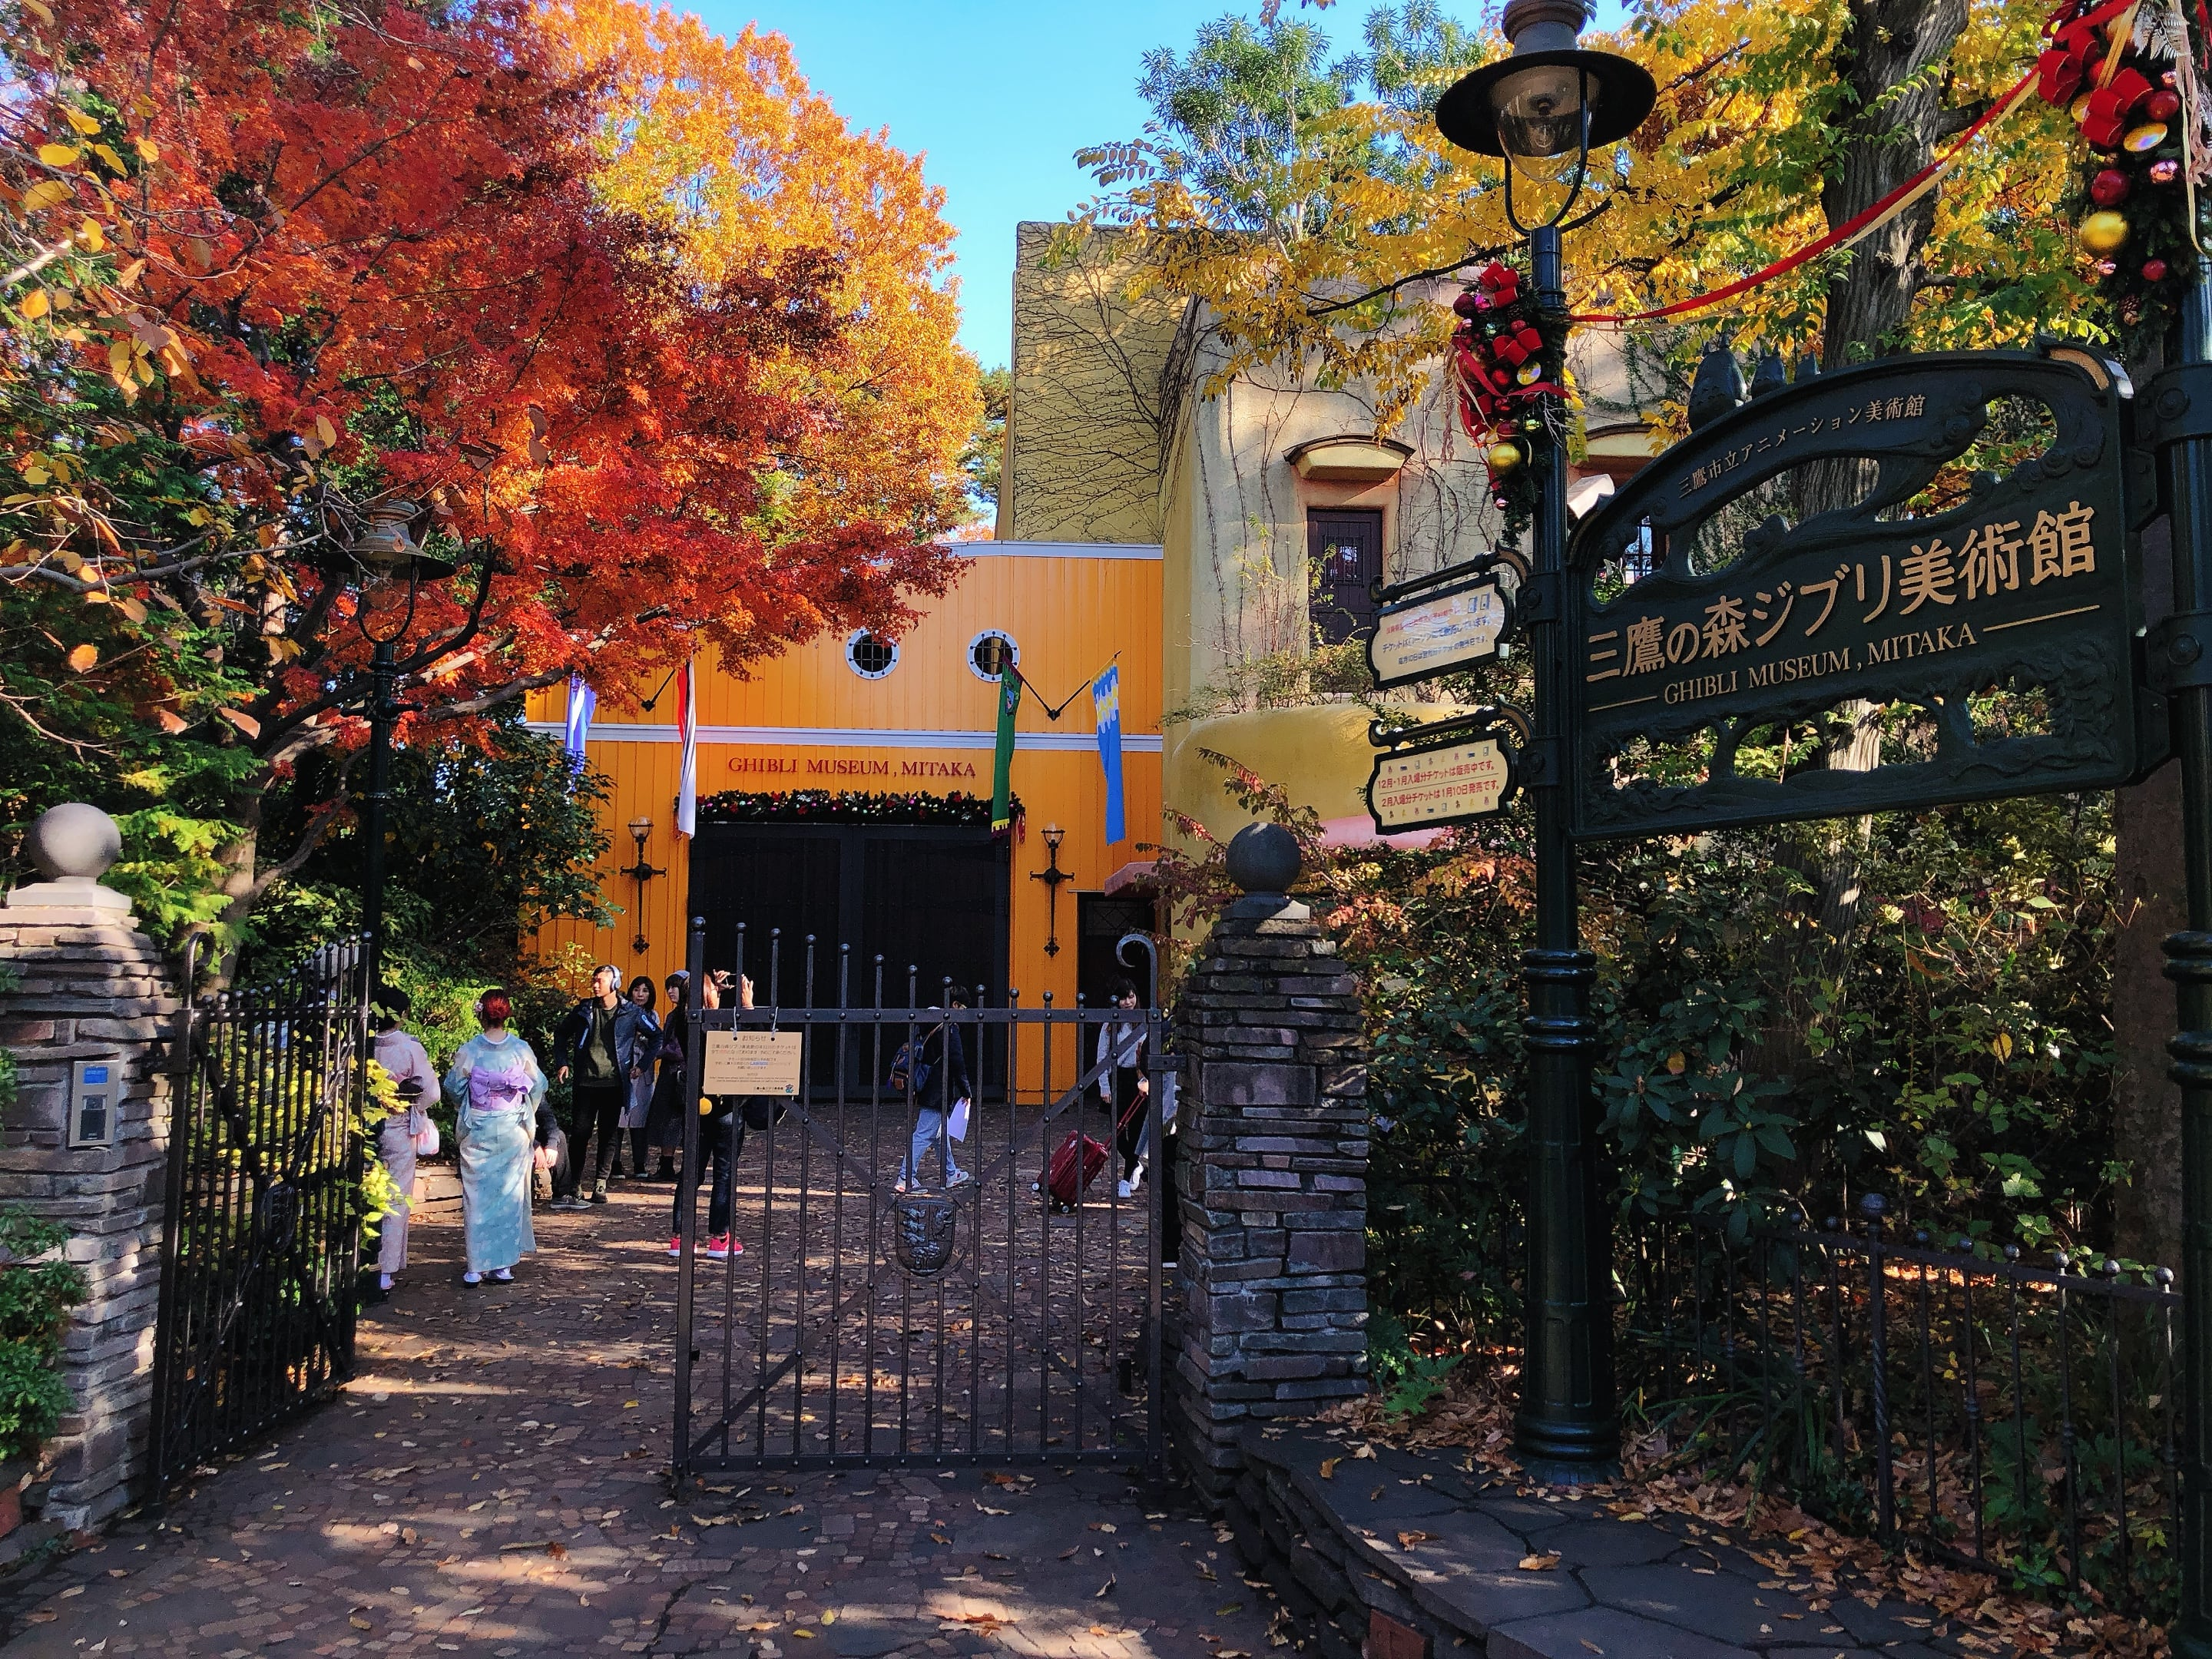 The entrance of Ghibli Museum